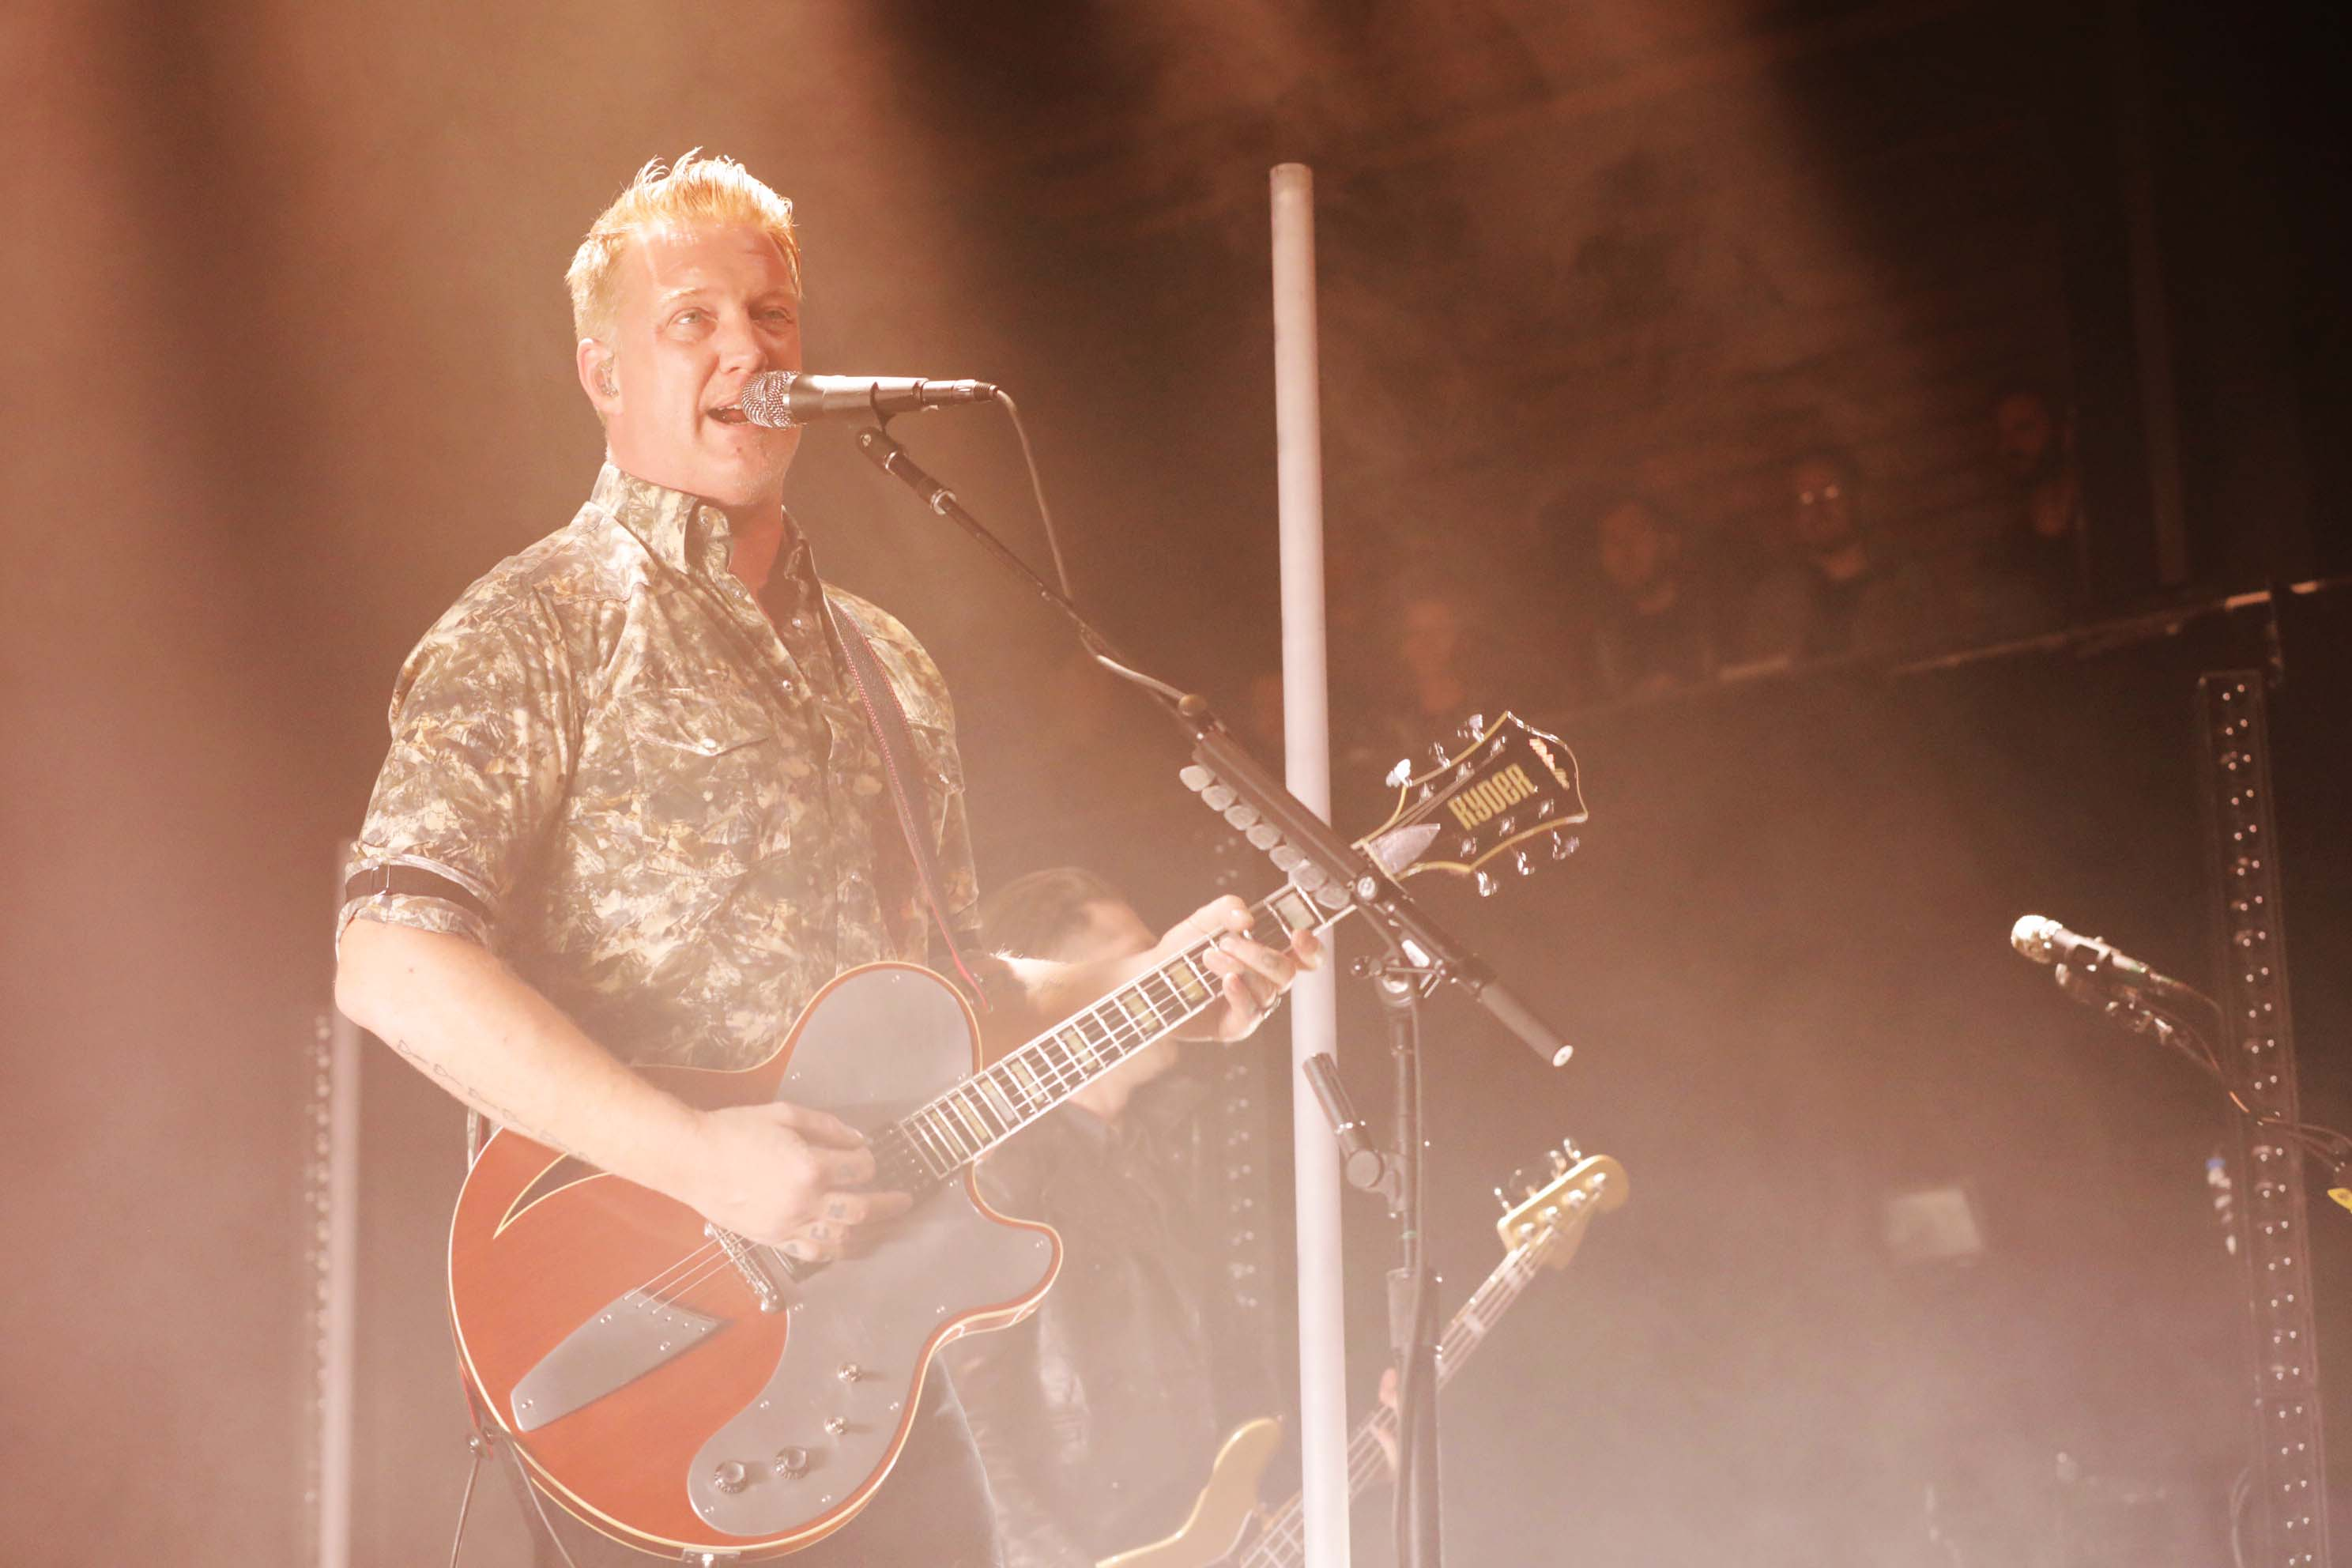 Lead singer Josh Homme rocking out while providing vocals for Queens of the Stone Age. Photo: Lmsorenson.net